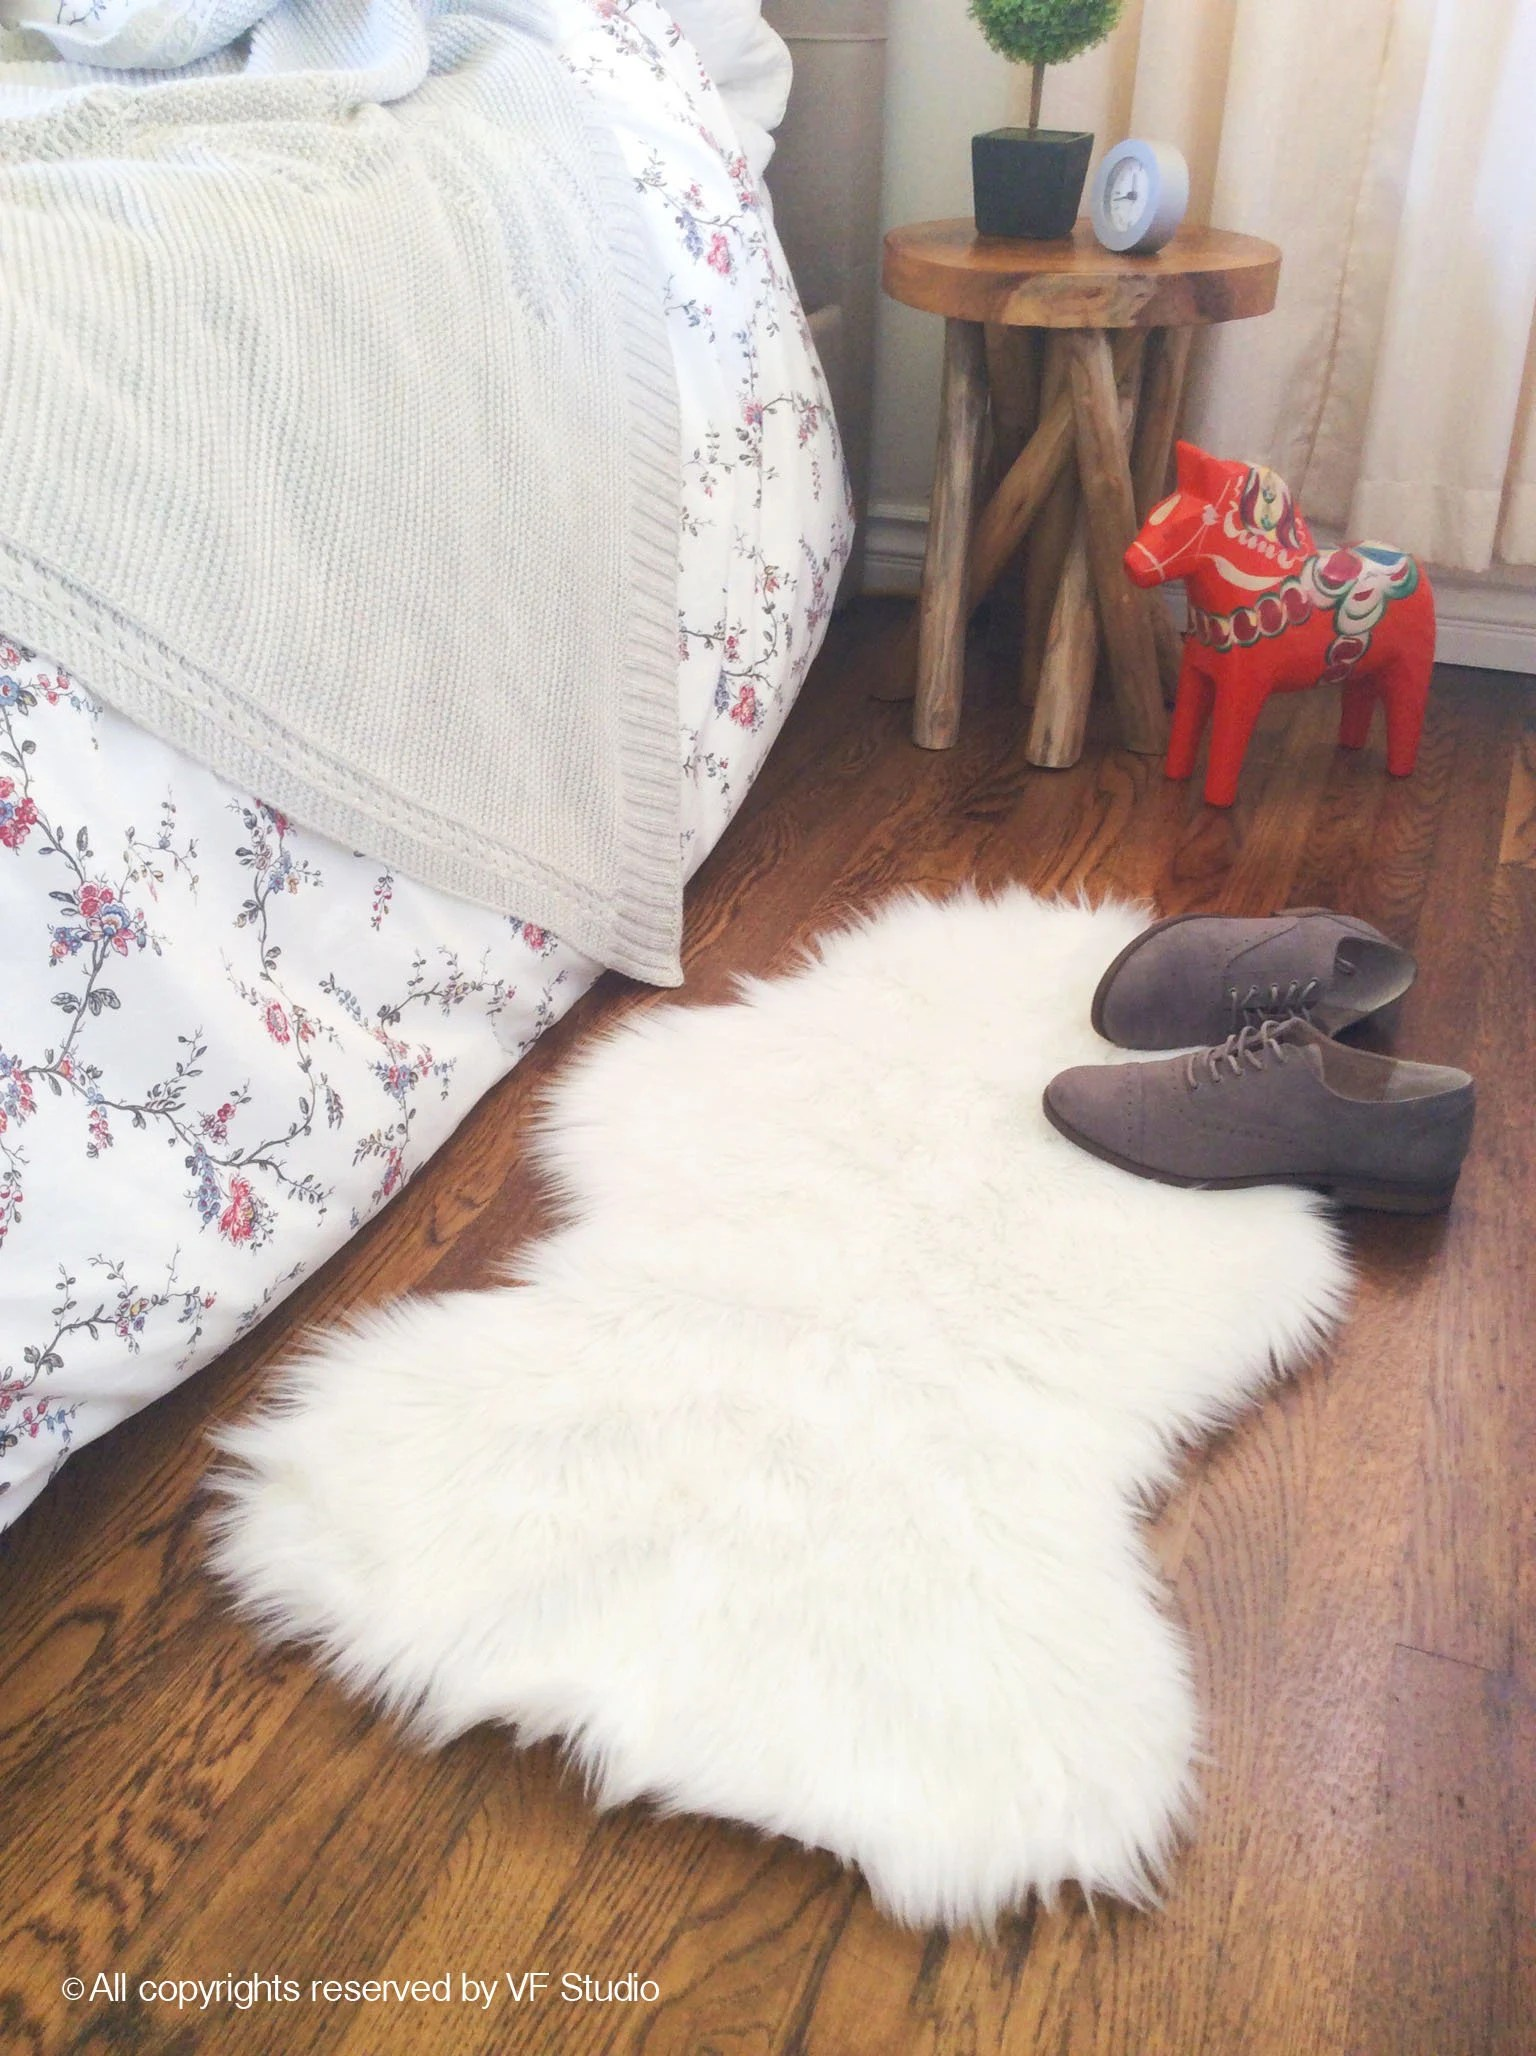 Sha Rug White Faux Sheepskin Shag Rug Decorative Nursery Rug Cozy Fur Bedroom Rug Handmade Faux Sheepskin All Sizes